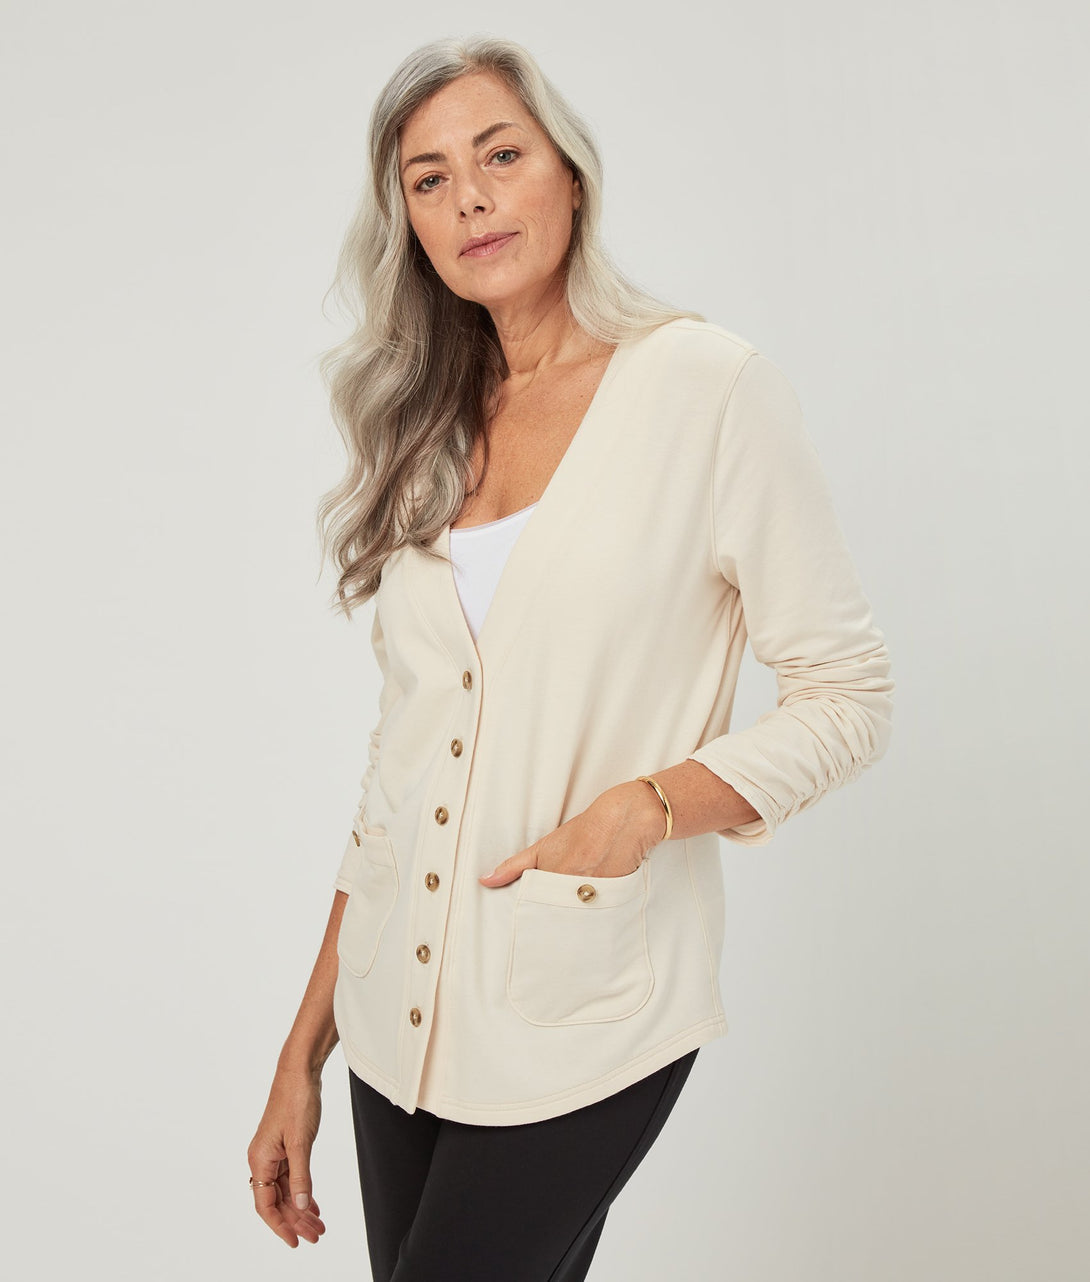 The Nina Cardigan in White Swan